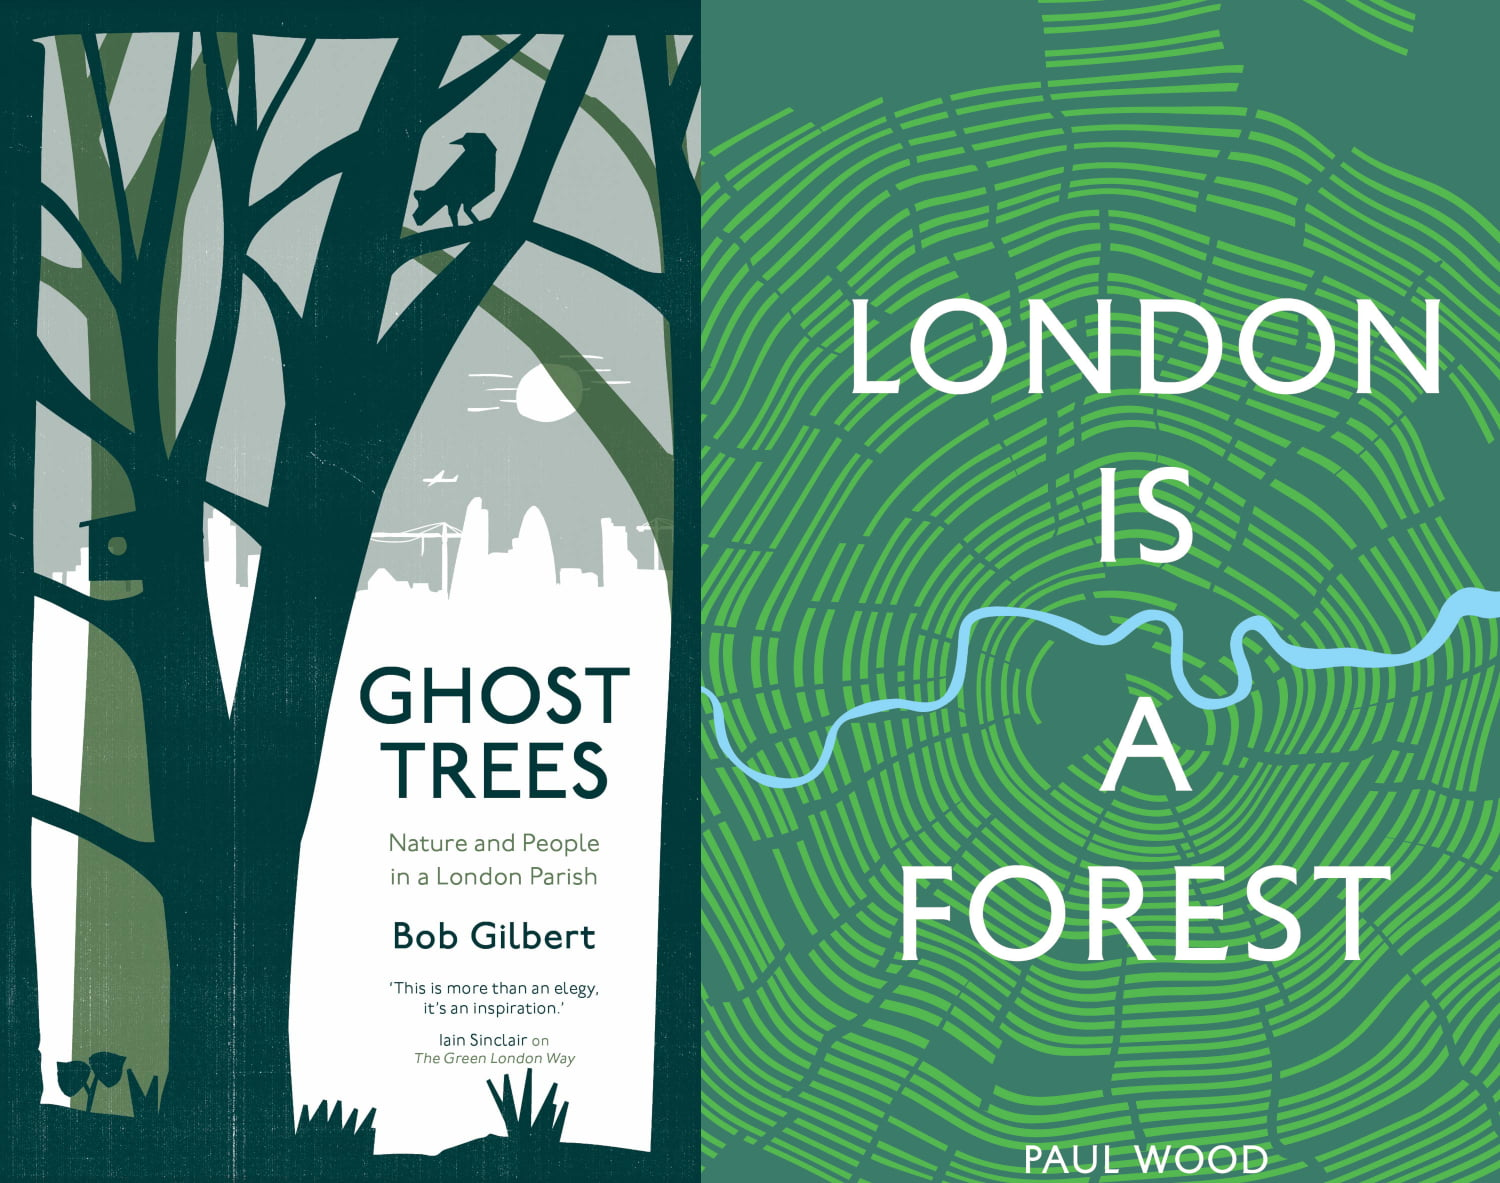 ECOS 40(5): Book Review: Ghost trees & London is a forest